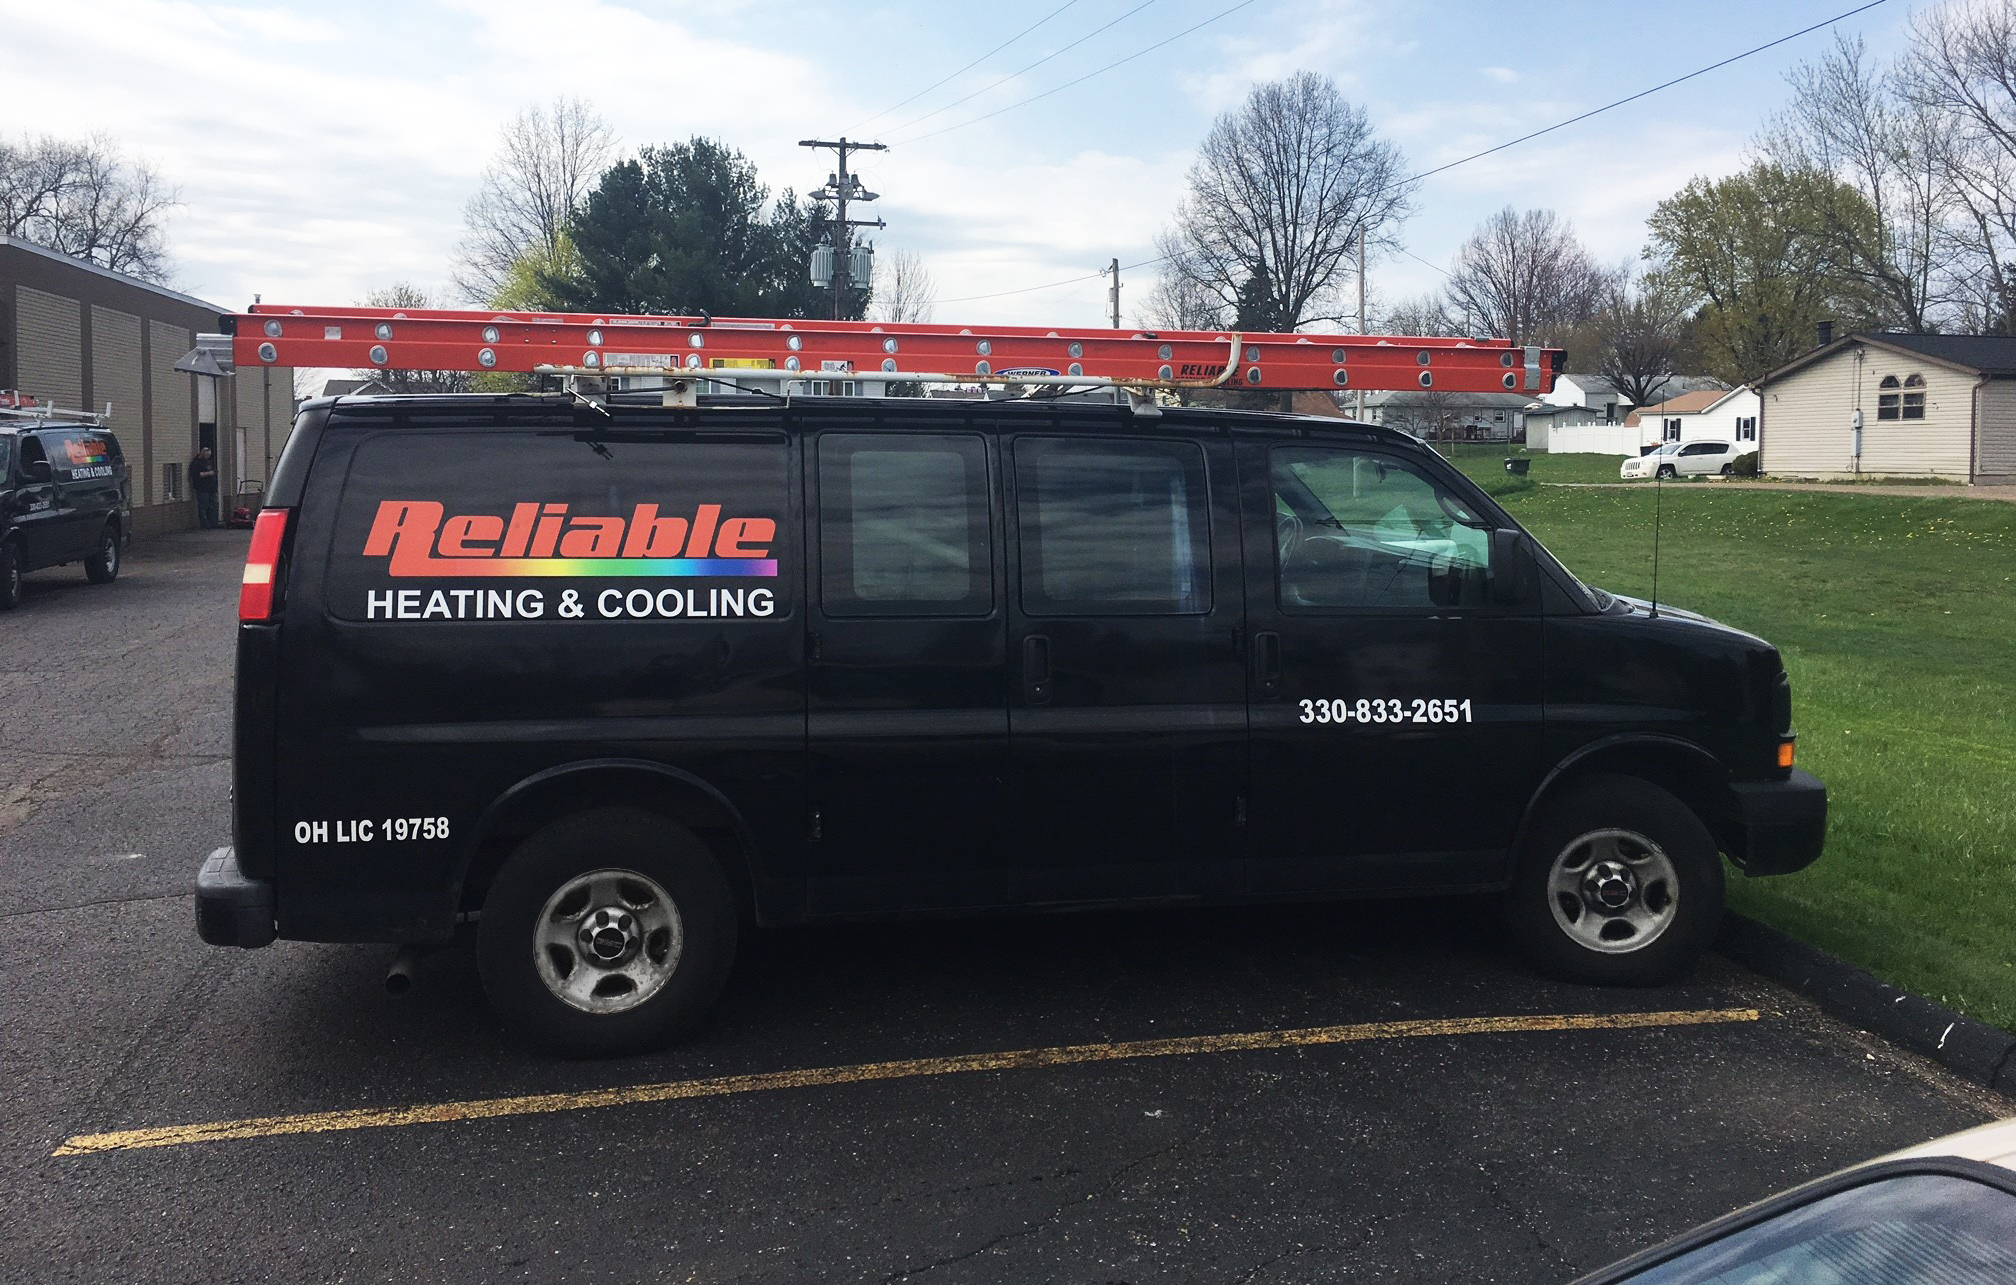 Reliable Heating and Cooling Service Truck